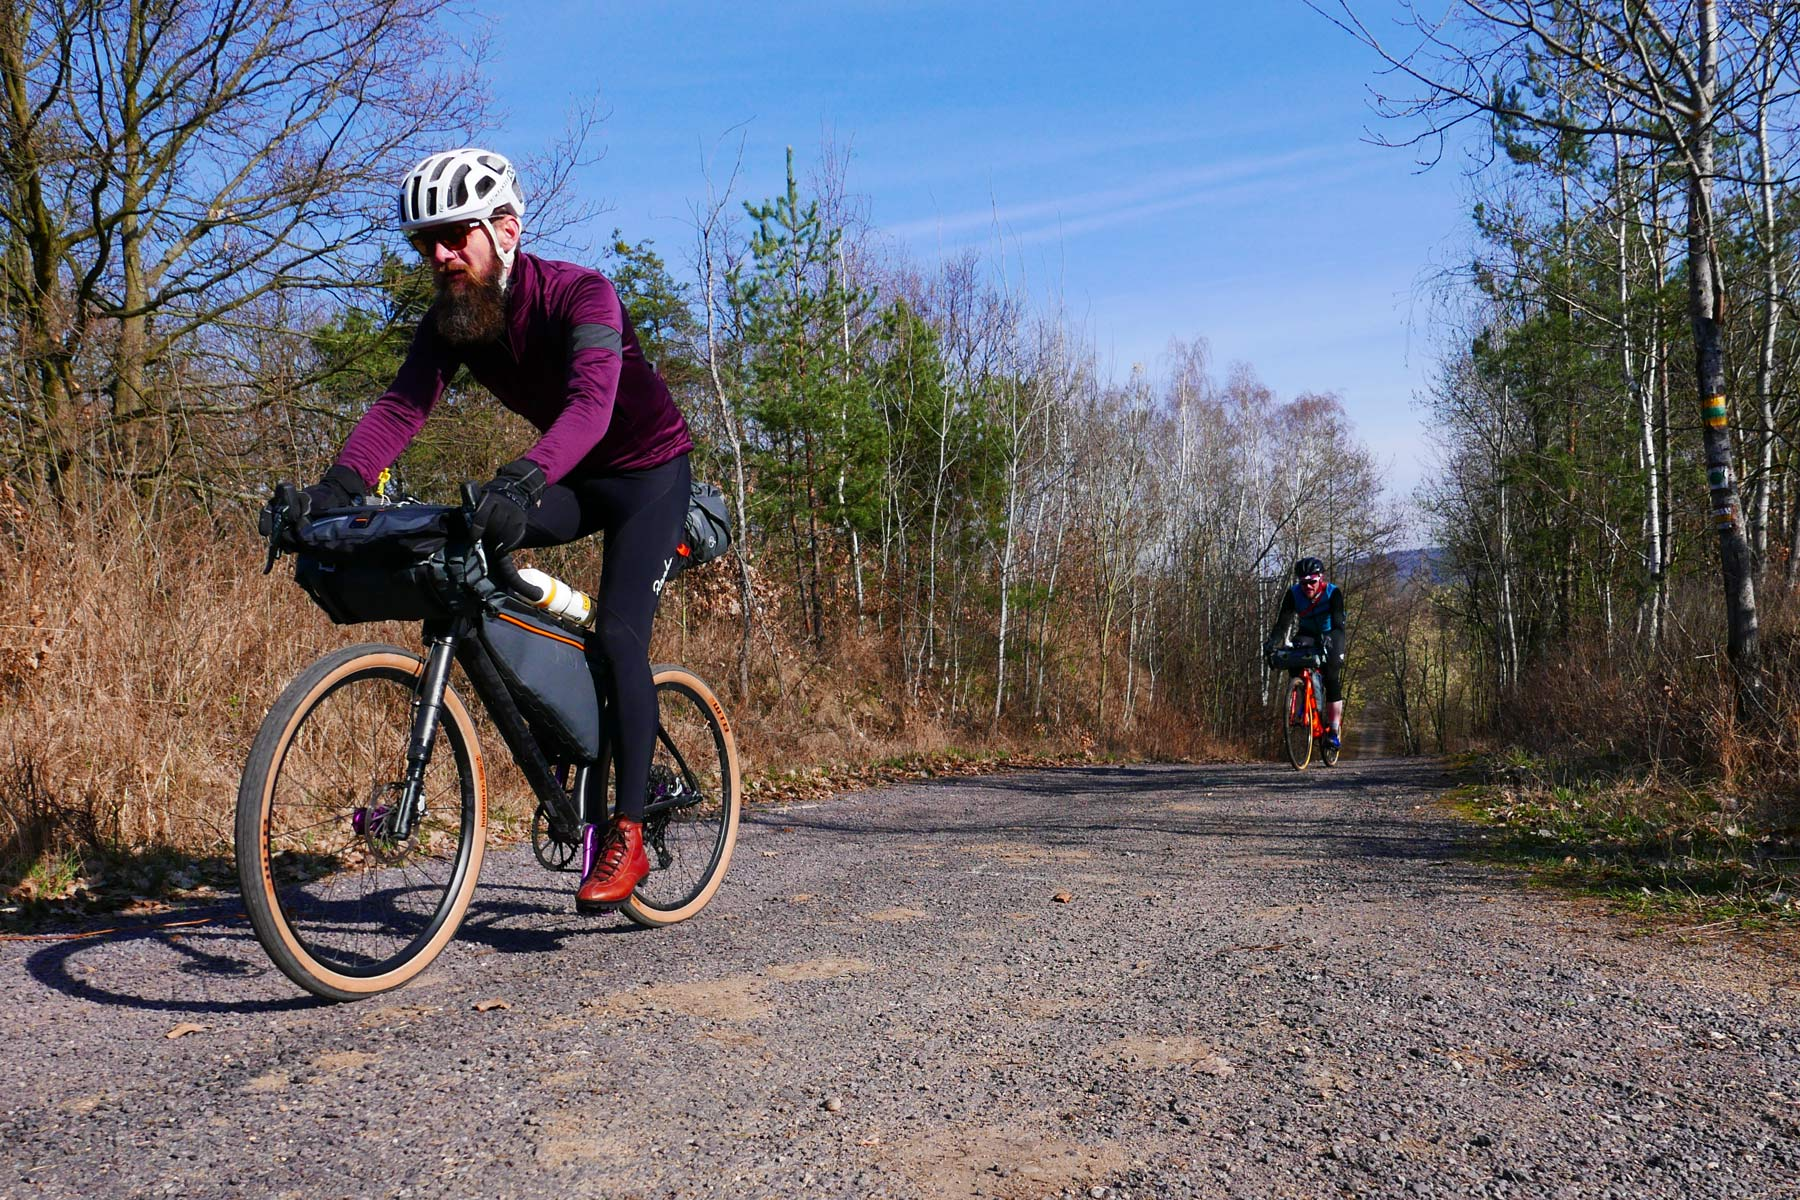 76d302b15 Holiday Gift Ideas for Cyclists - Cory s Wish List 2017 - Bikerumor